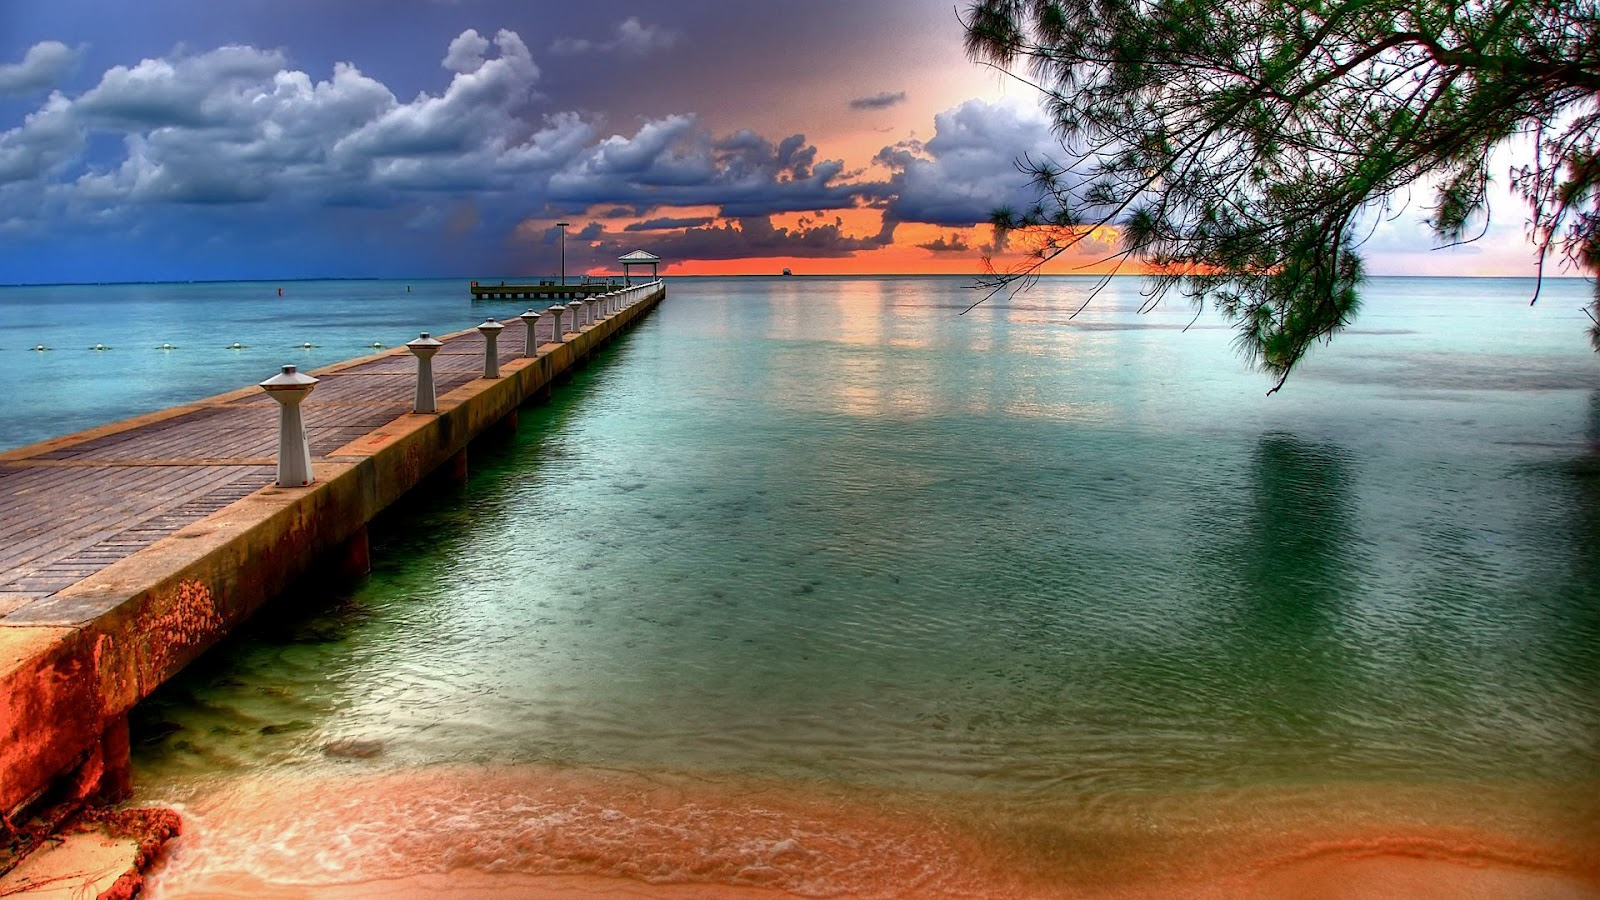 Place Beach Full HD Nature Background Wallpaper for Laptop Widescreen 1600x900